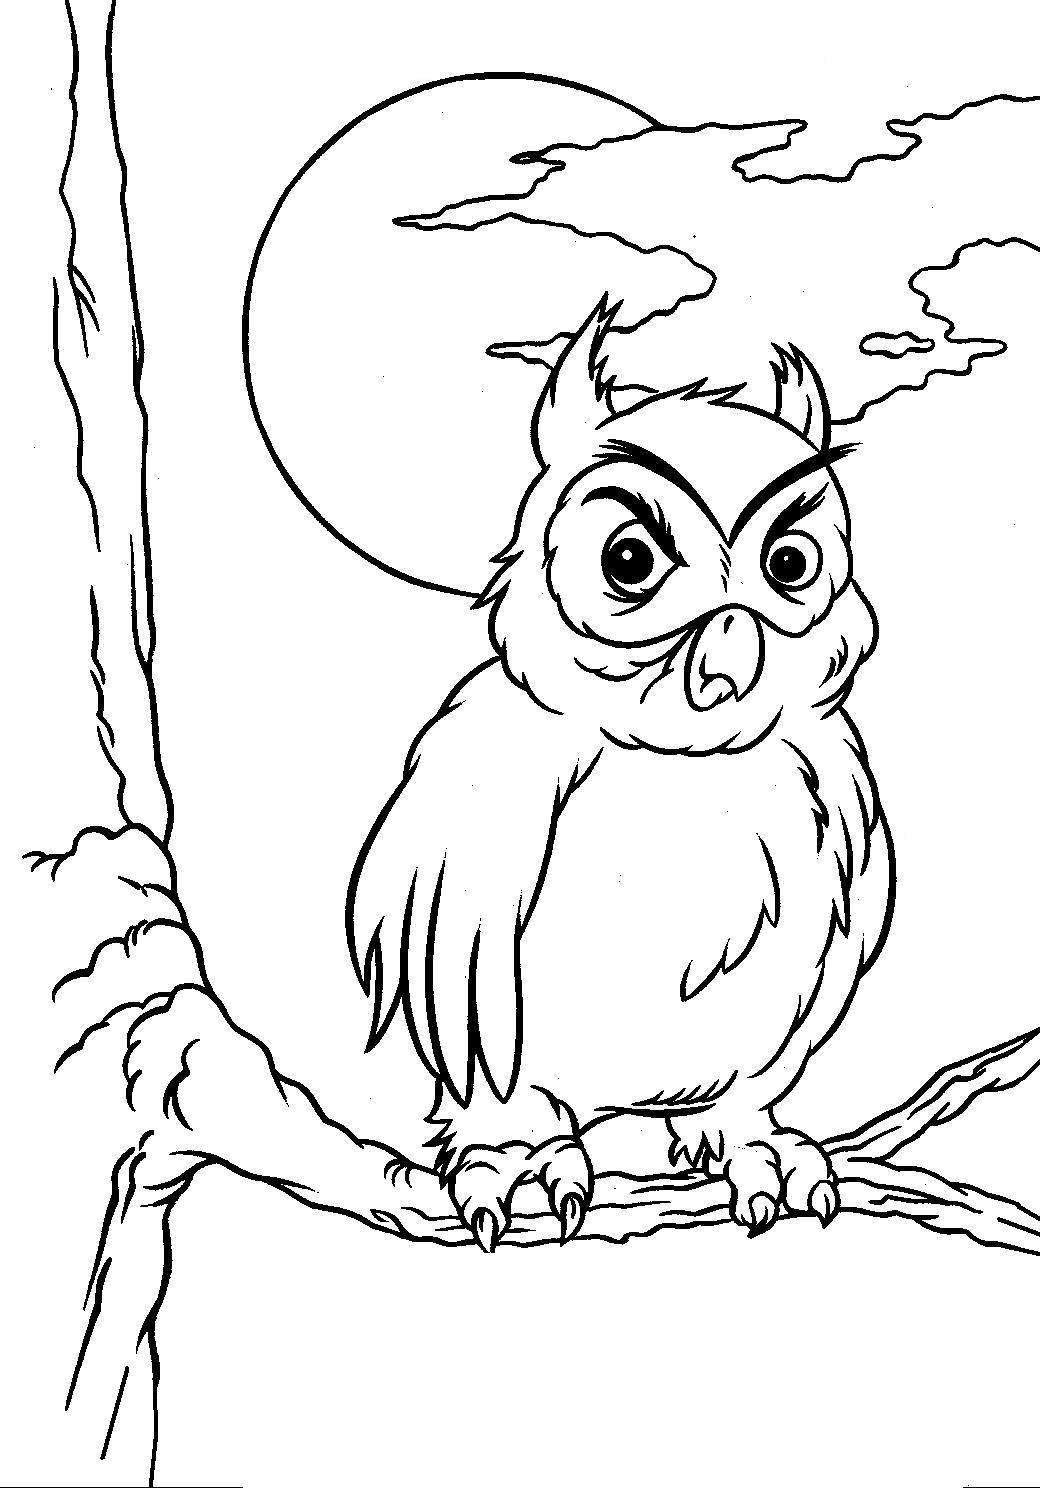 Halloween Owl Coloring Pages For Kids Owl Coloring Pages Halloween Coloring Pictures Halloween Coloring